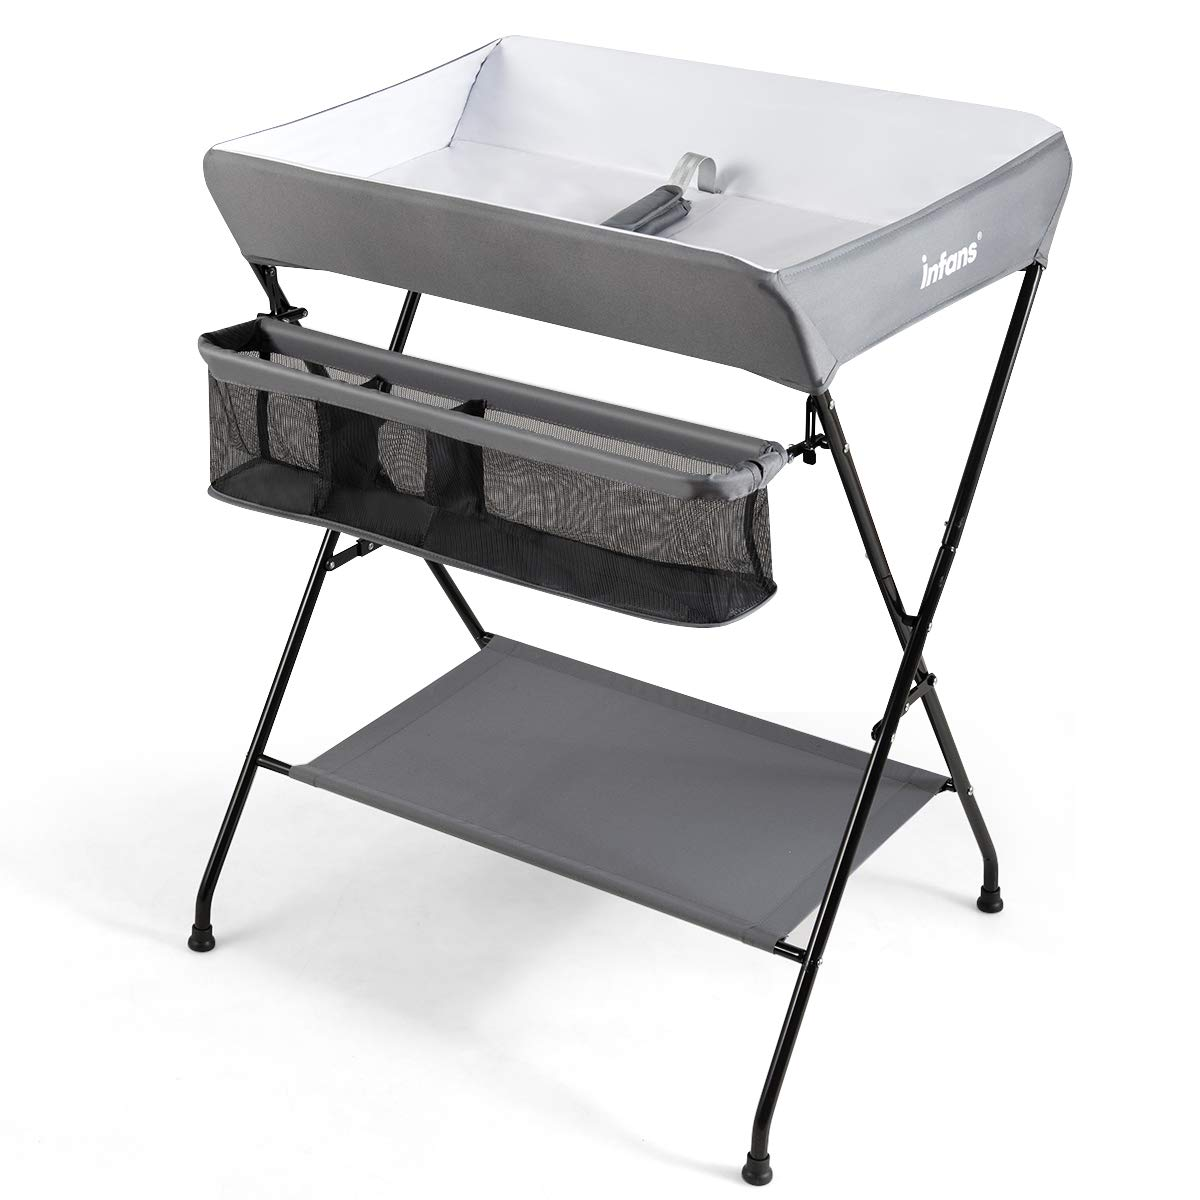 INFANS Baby Diaper Table, Portable Infant Changing Station with Safety Belt, Large Storage Basket Shelf, Easy to Clean Waterproof Surface, Non Slip Foot Covers, Foldable Nursery Organizer Grey